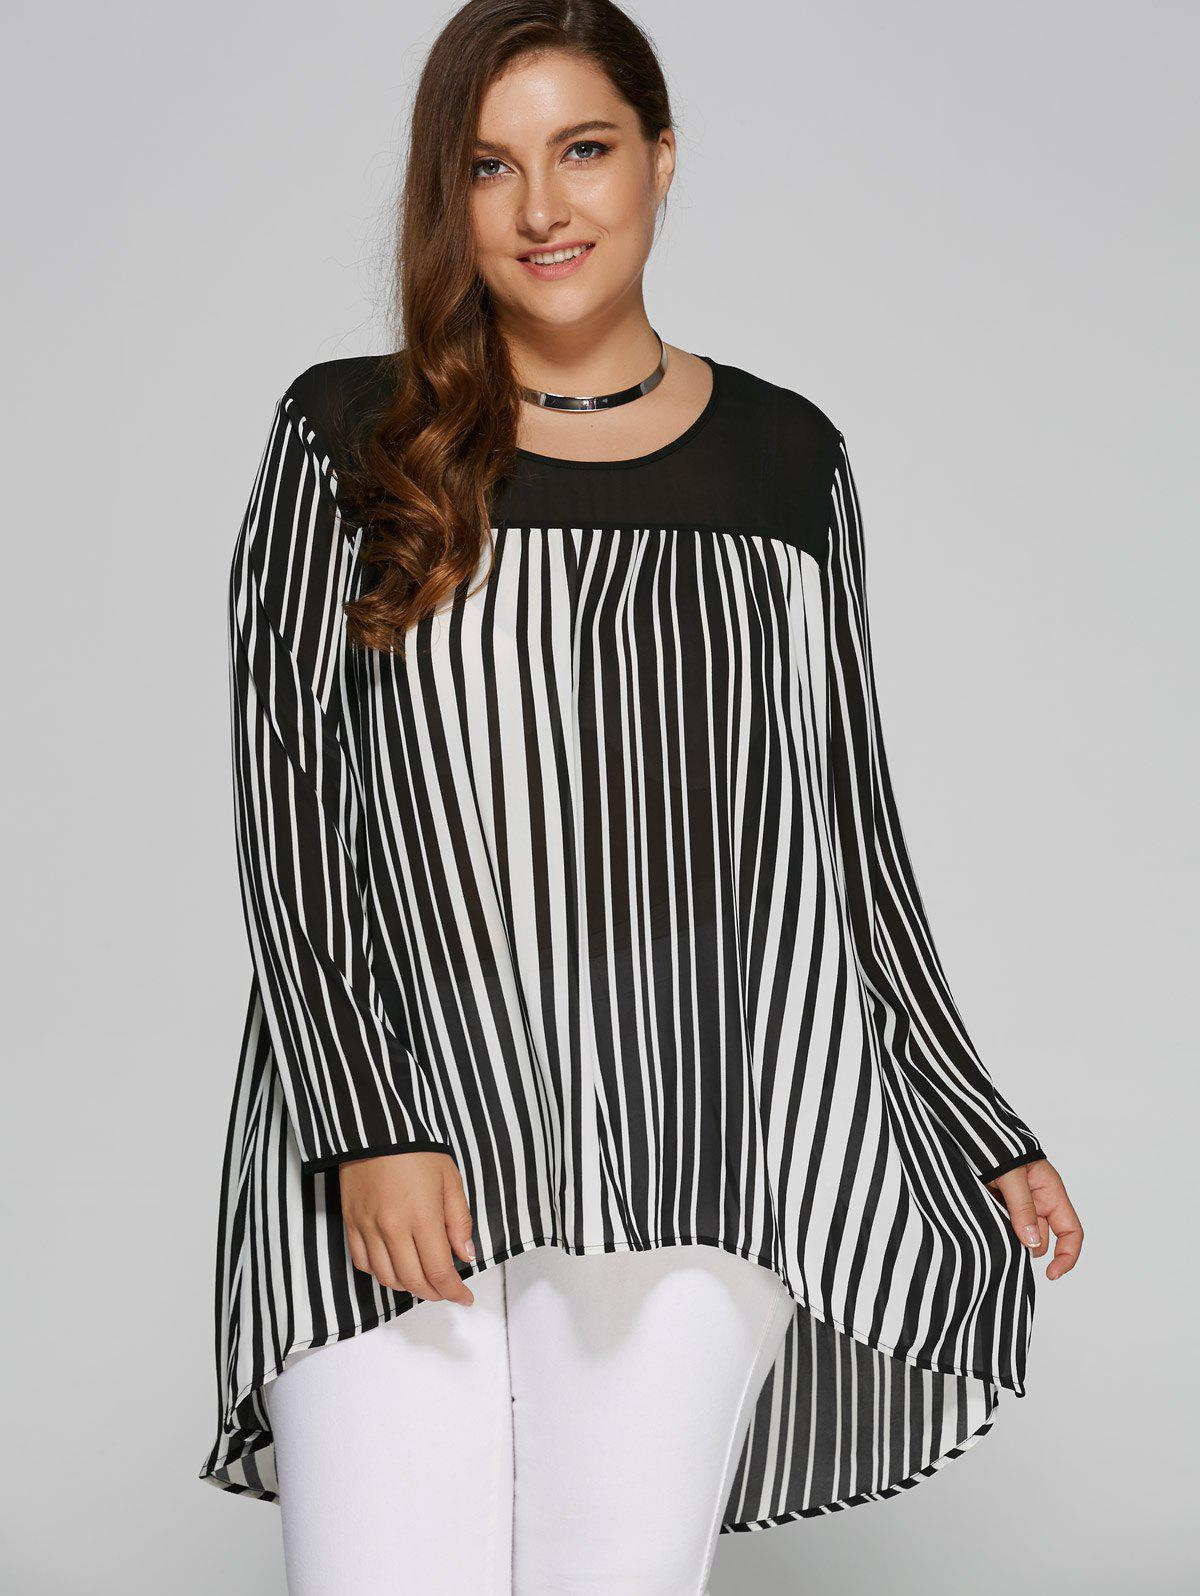 Plus Size High Low Hem Striped Blouse - WHITE/BLACK XL